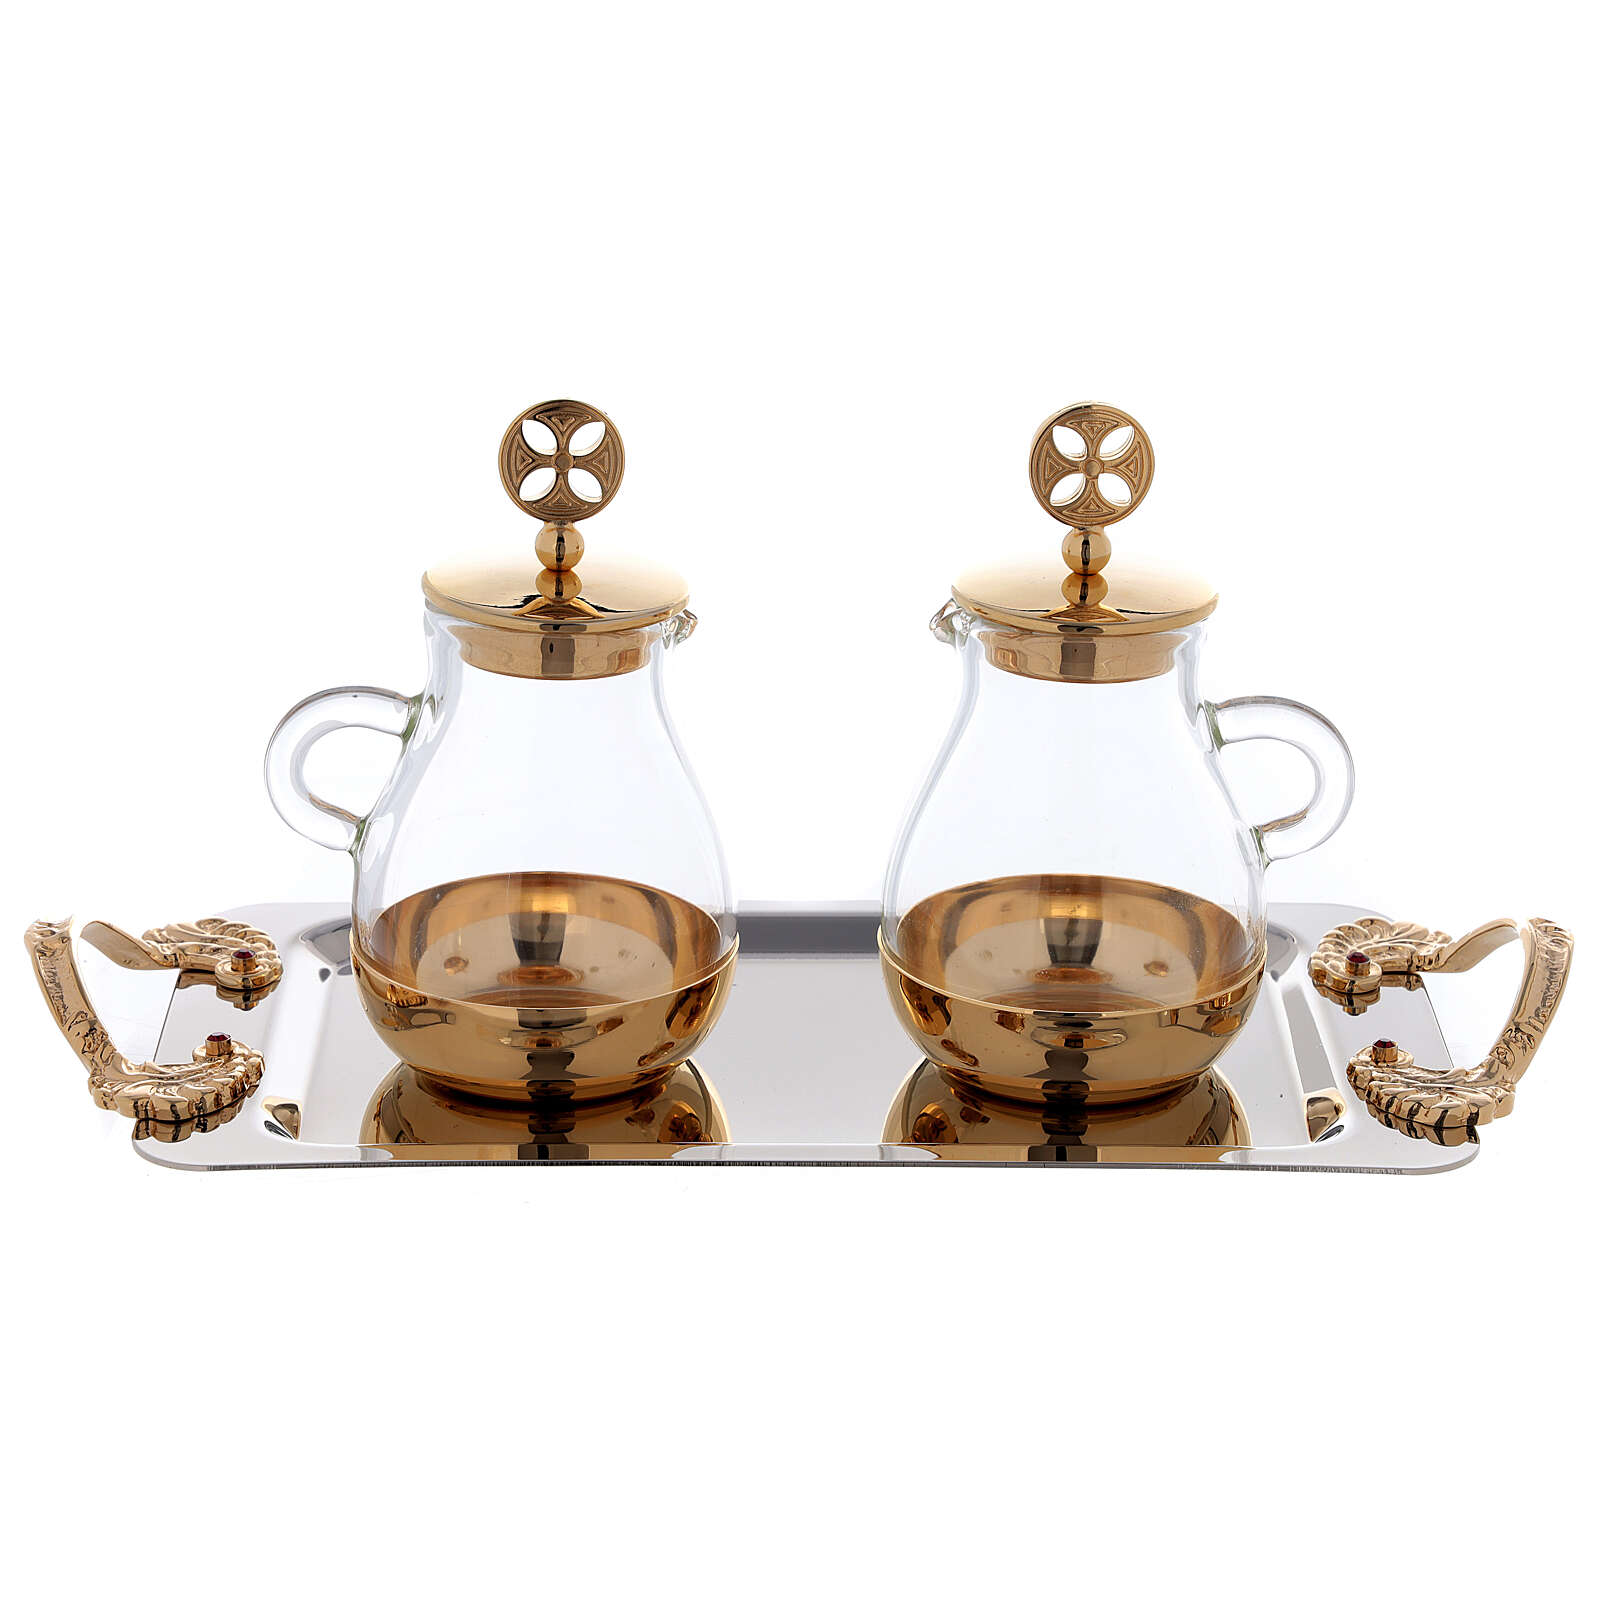 Bologna gold plated brass cruets 4